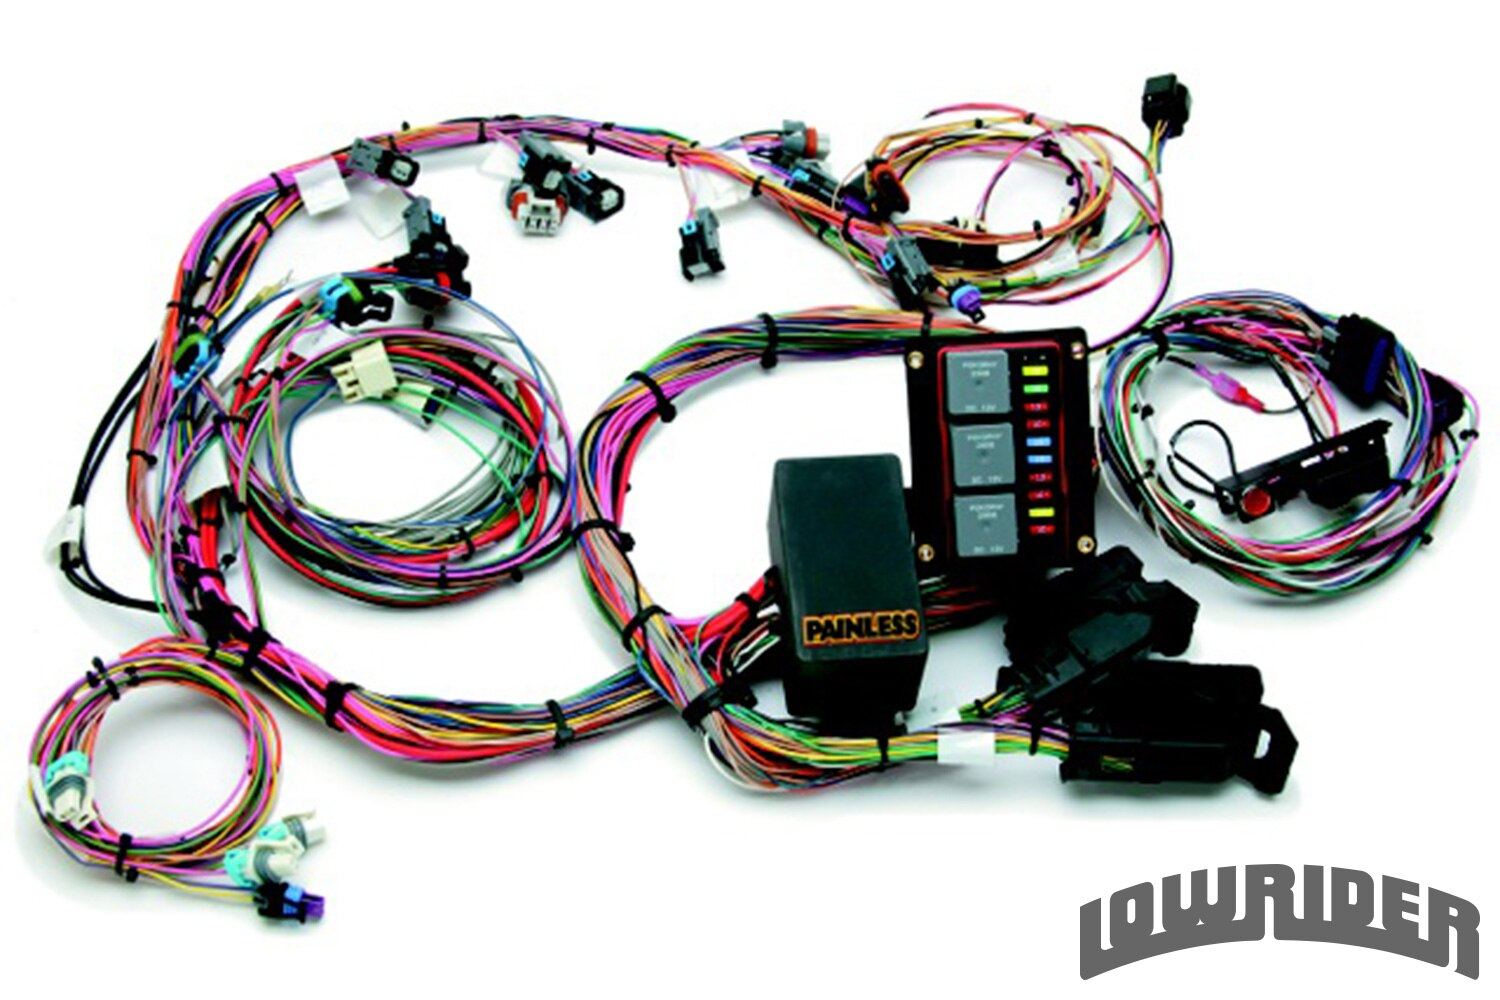 lowrider new products march 2014 painless performance LS harness lowrider new products march 2014 lowrider magazine painless ls wiring harness at soozxer.org